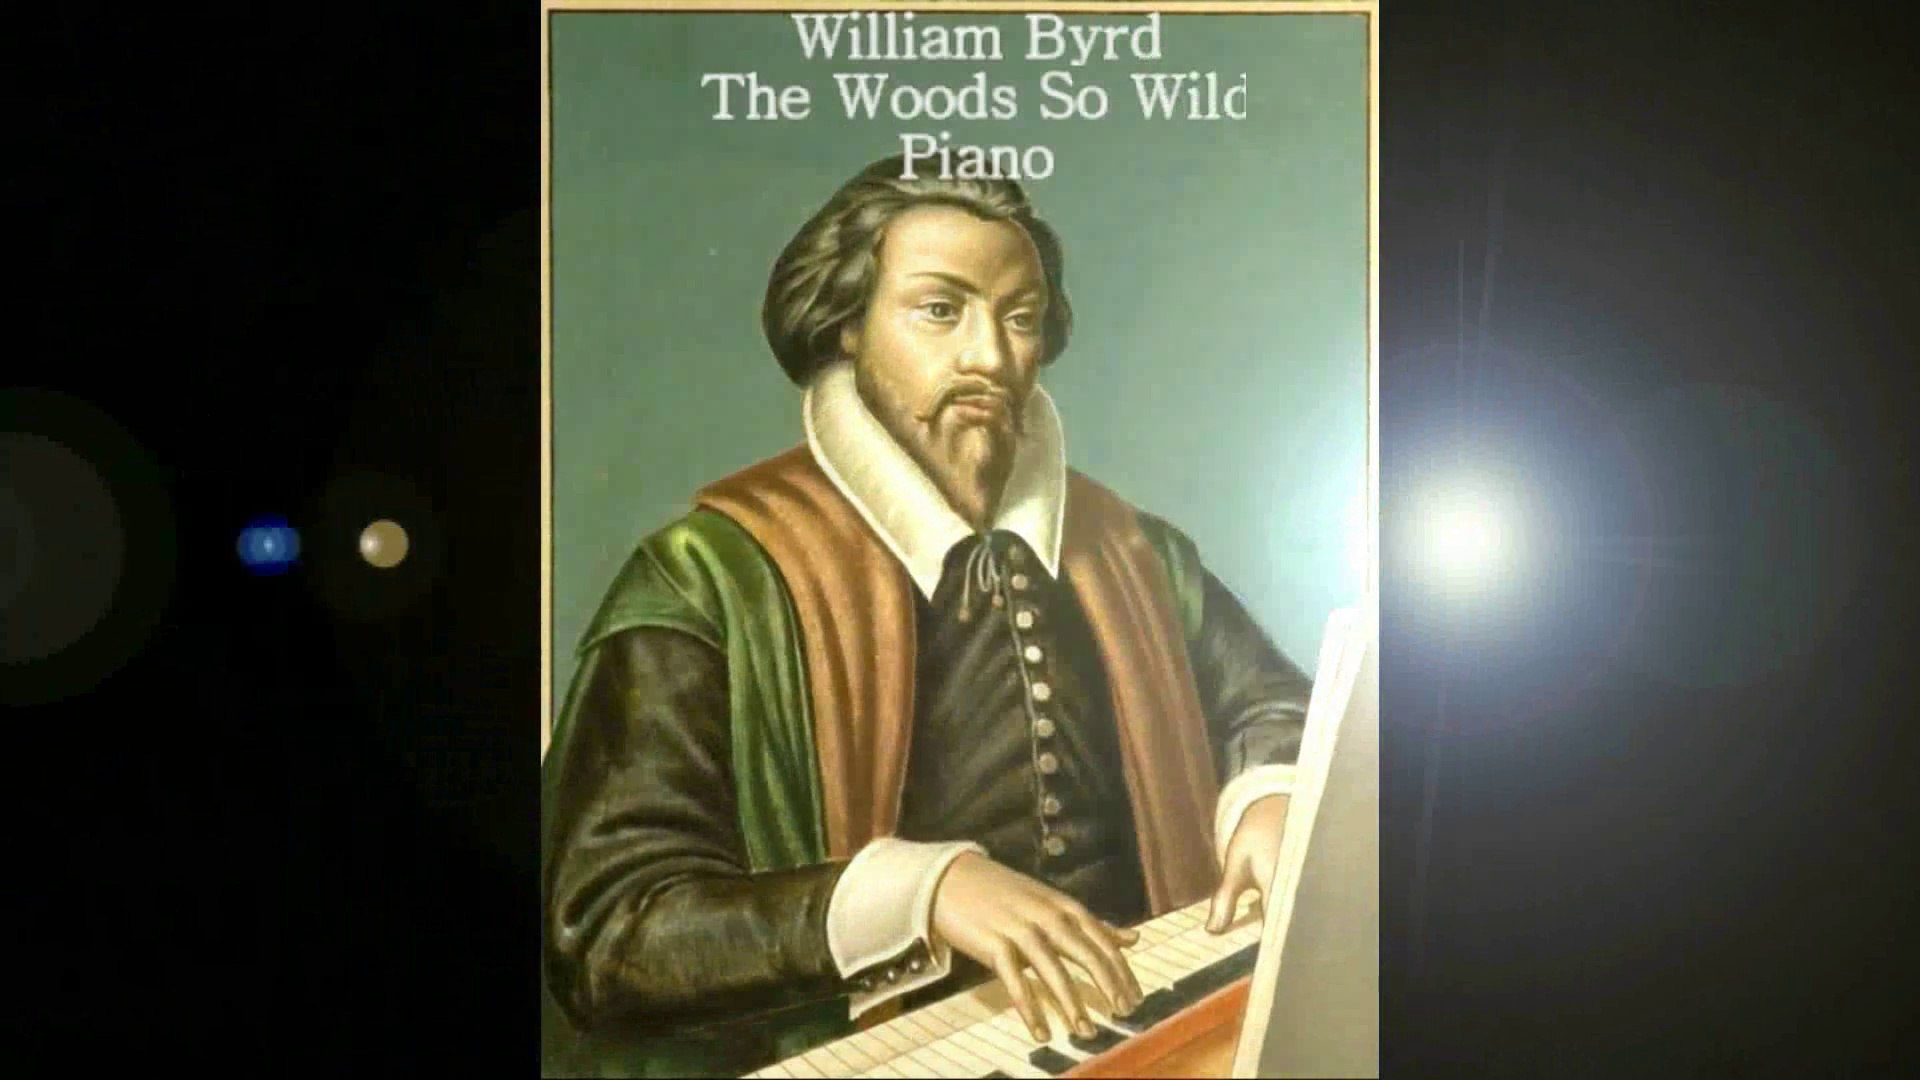 William Byrd - The Woods So Wild - Piano